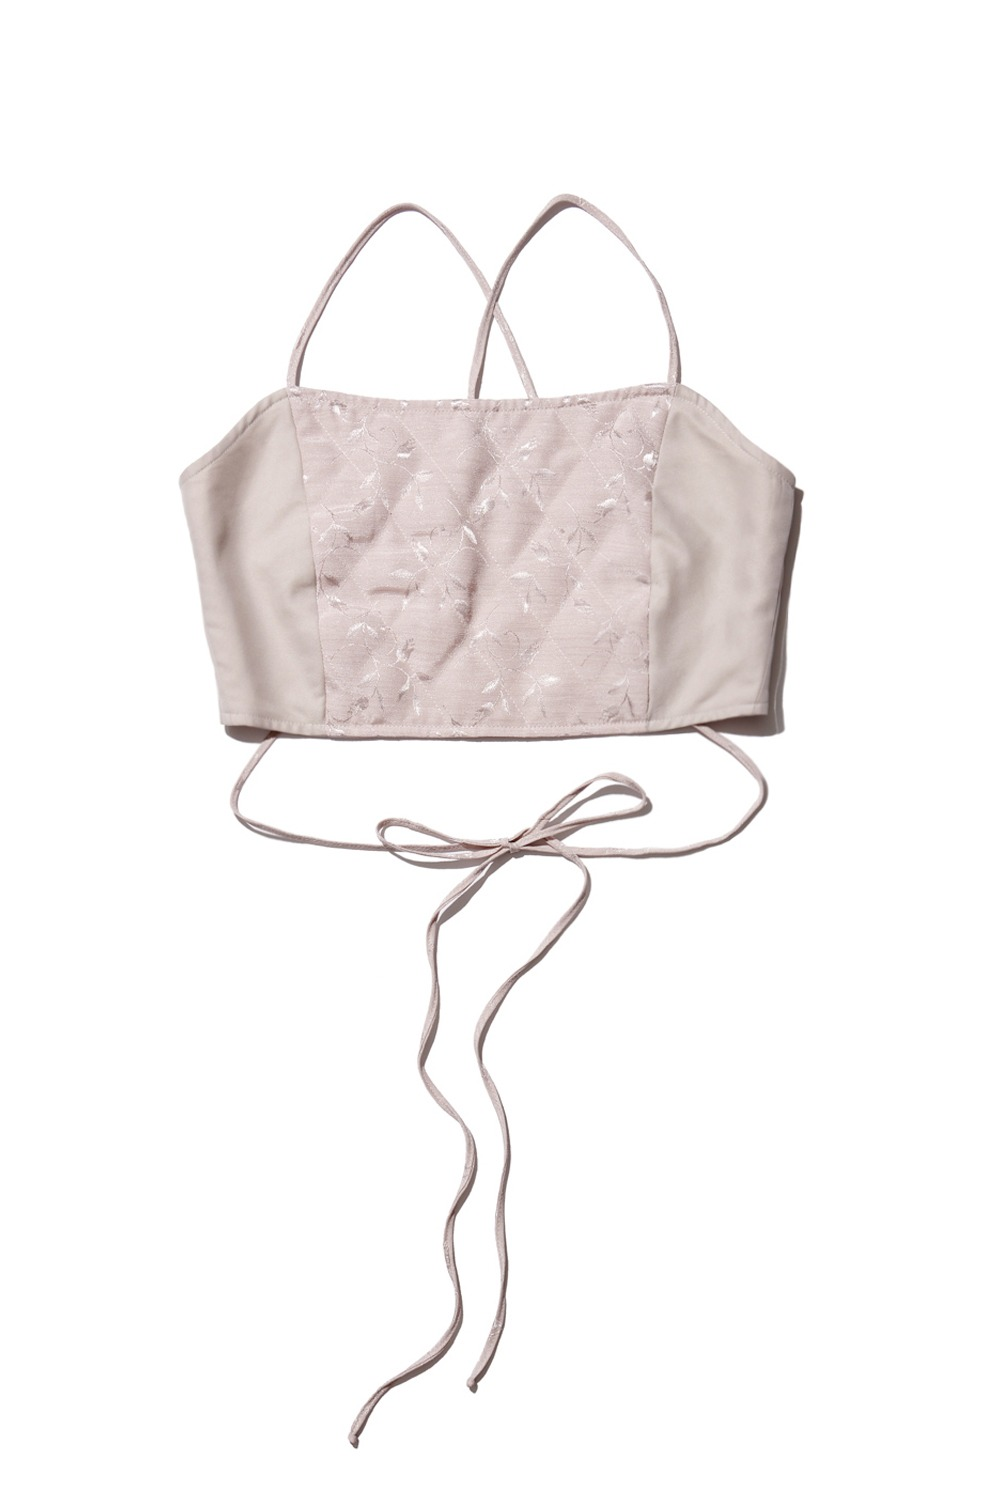 PROJECT MAGO_QUILTED BUSTIER_CREAM